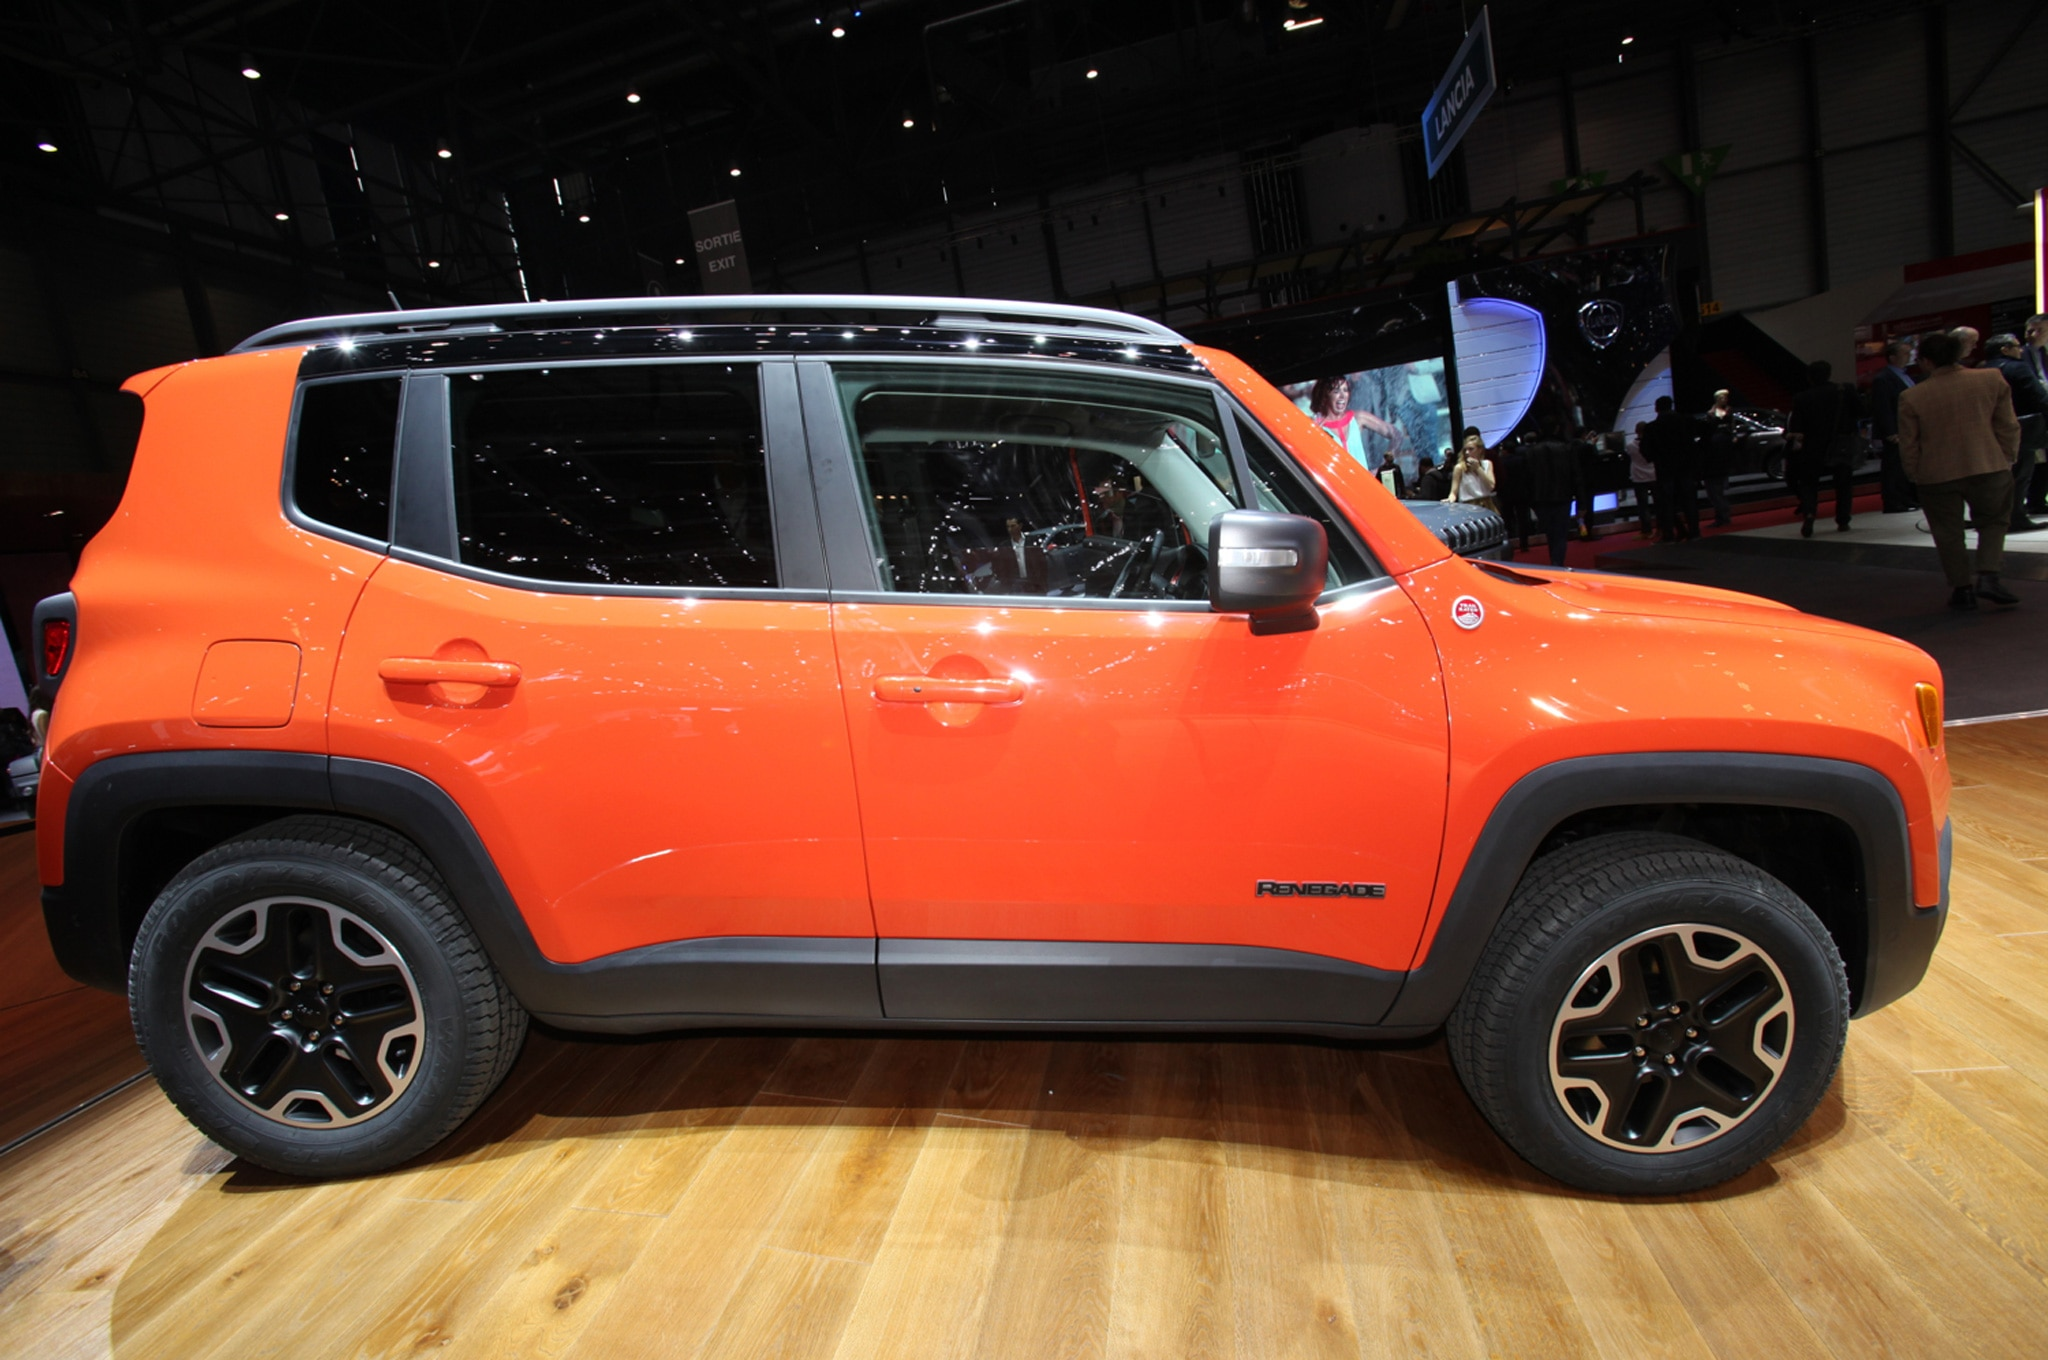 2015 Jeep Renegade Trailhawk show floor side view